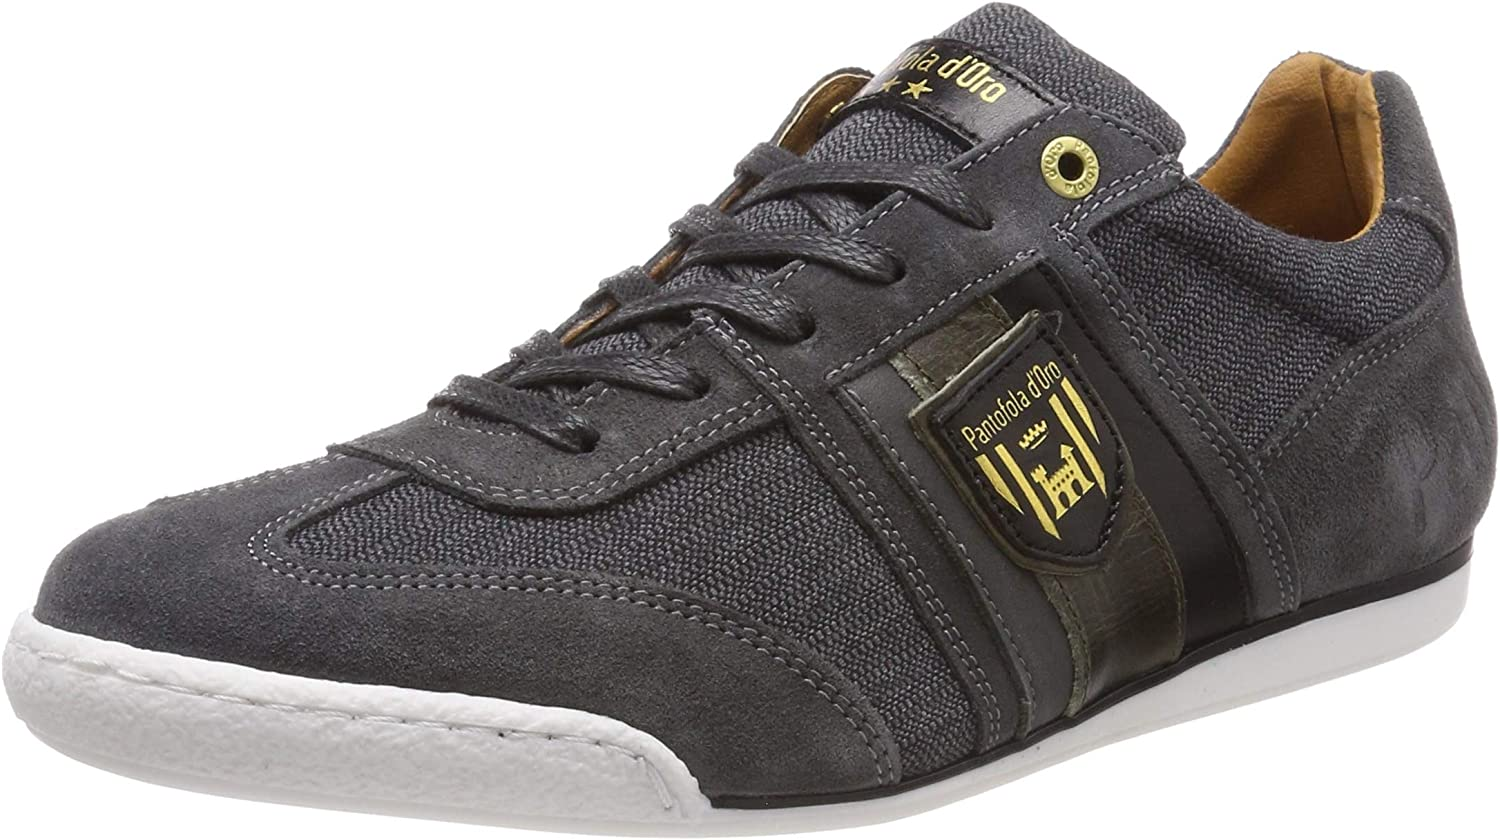 Pantofola d'gold Men's's Imola Scudo Denim men Low Top Sneakers